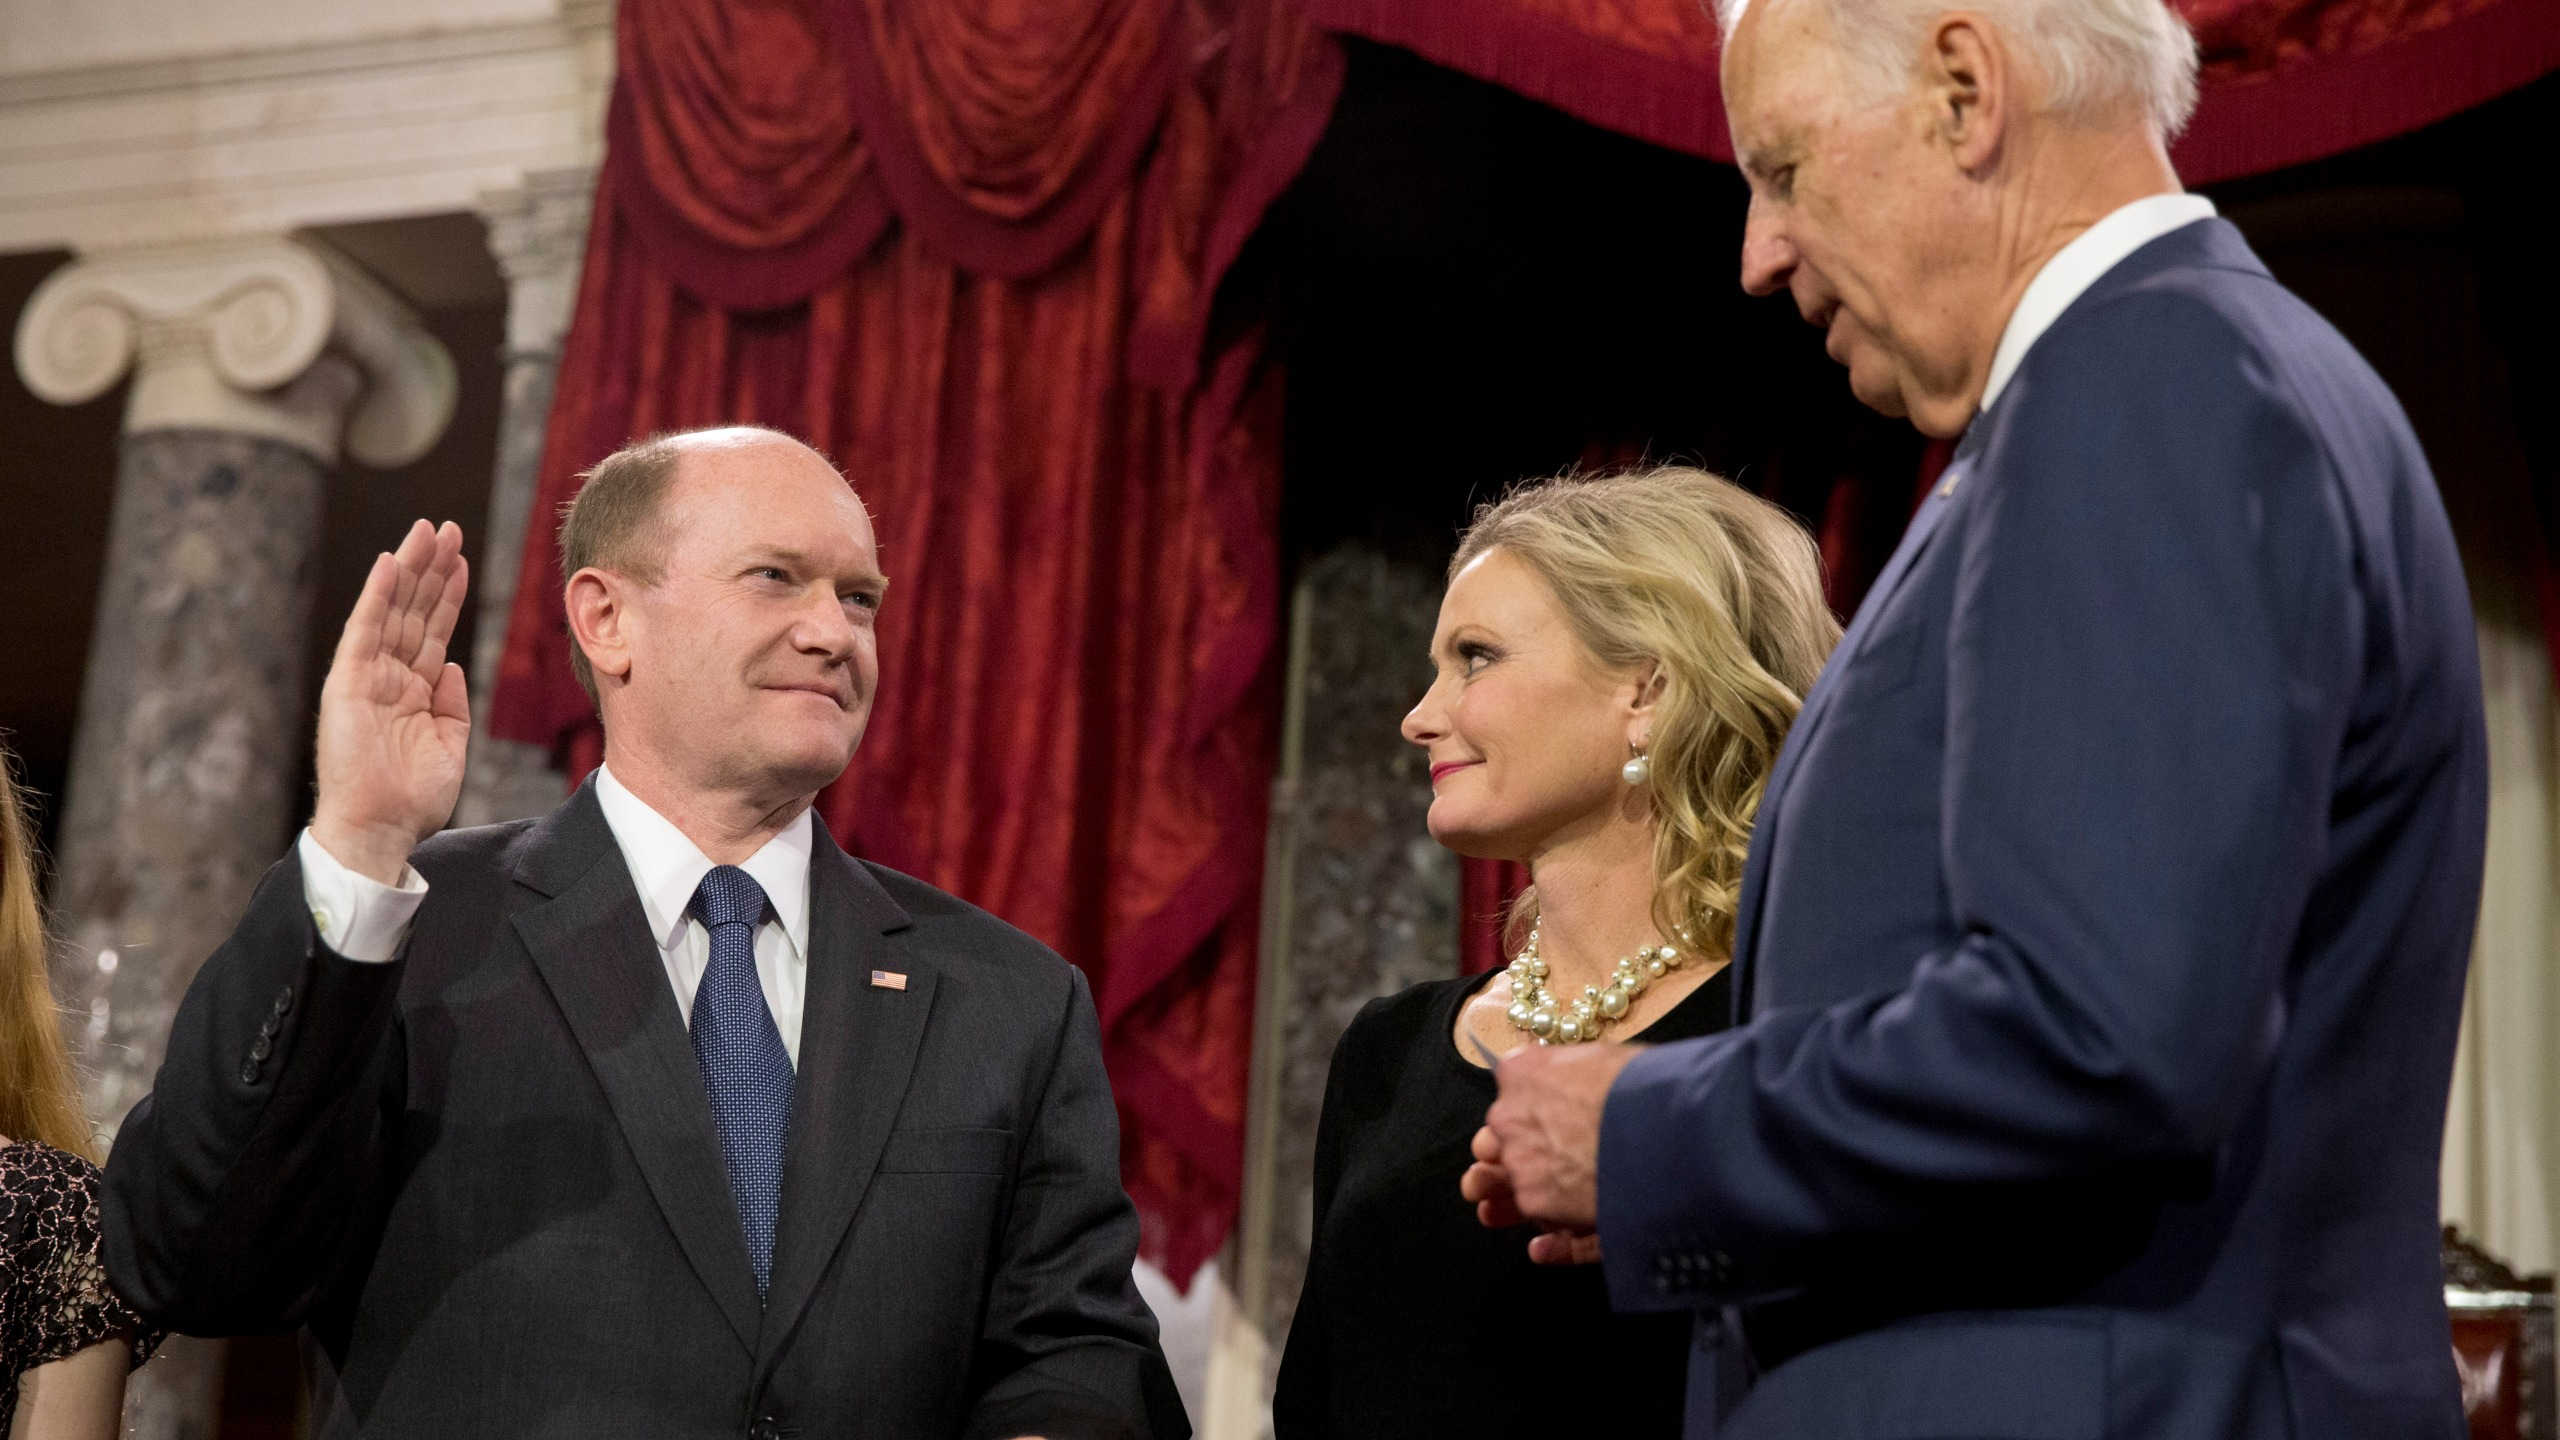 Joe Biden, Chris Coons, Annie Coons